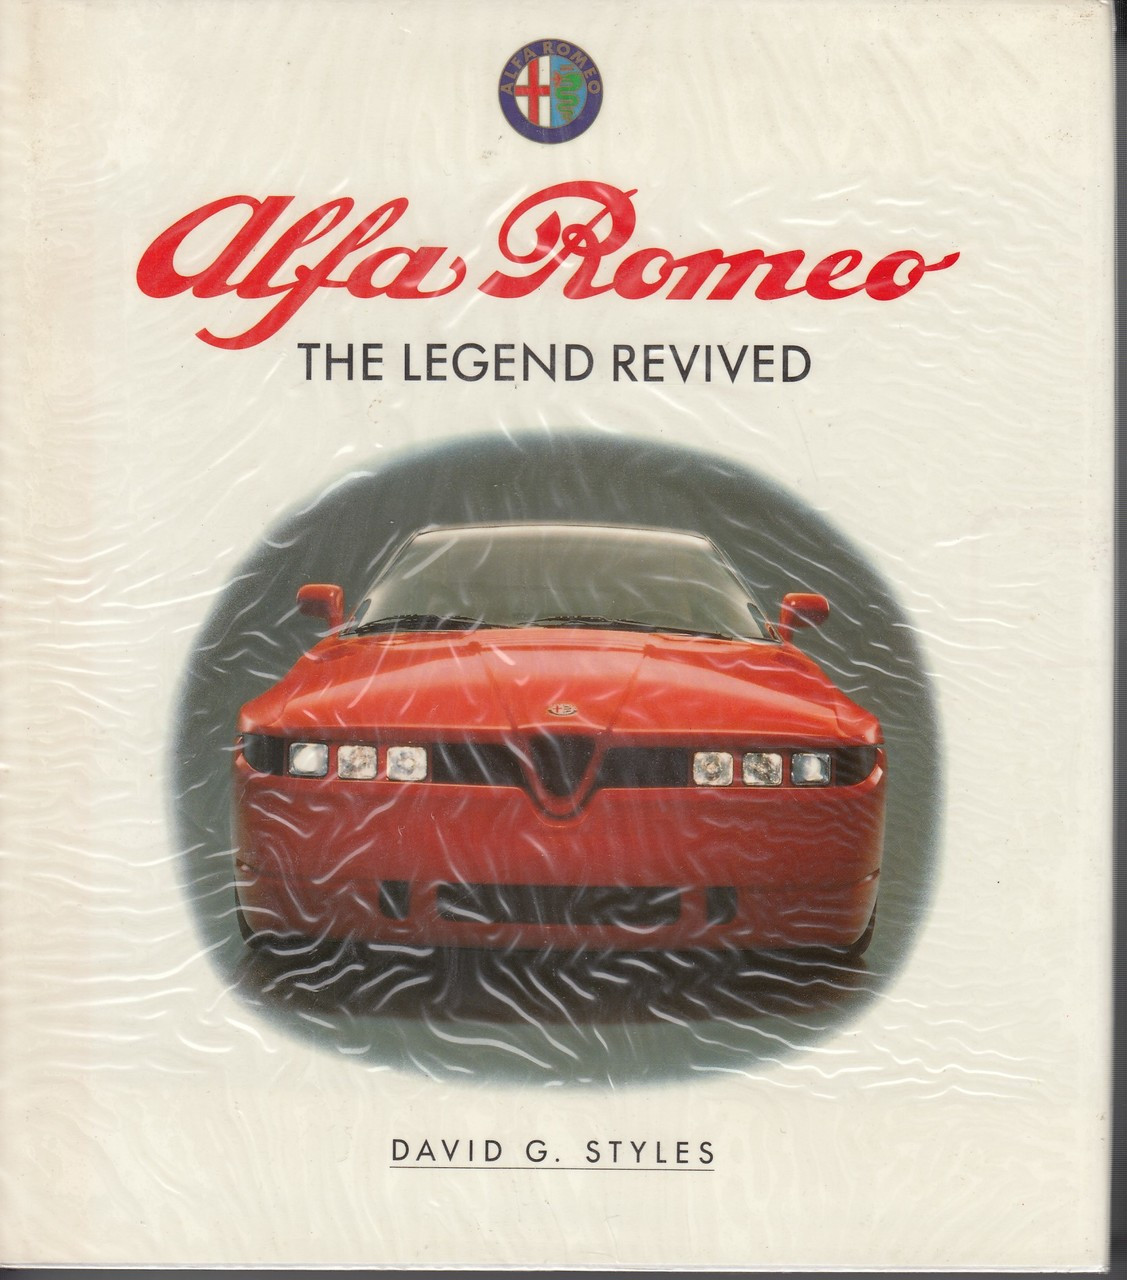 Alfa Romeo Owners Bible A Hands-On Guide to Getting the Most from Your Alfa